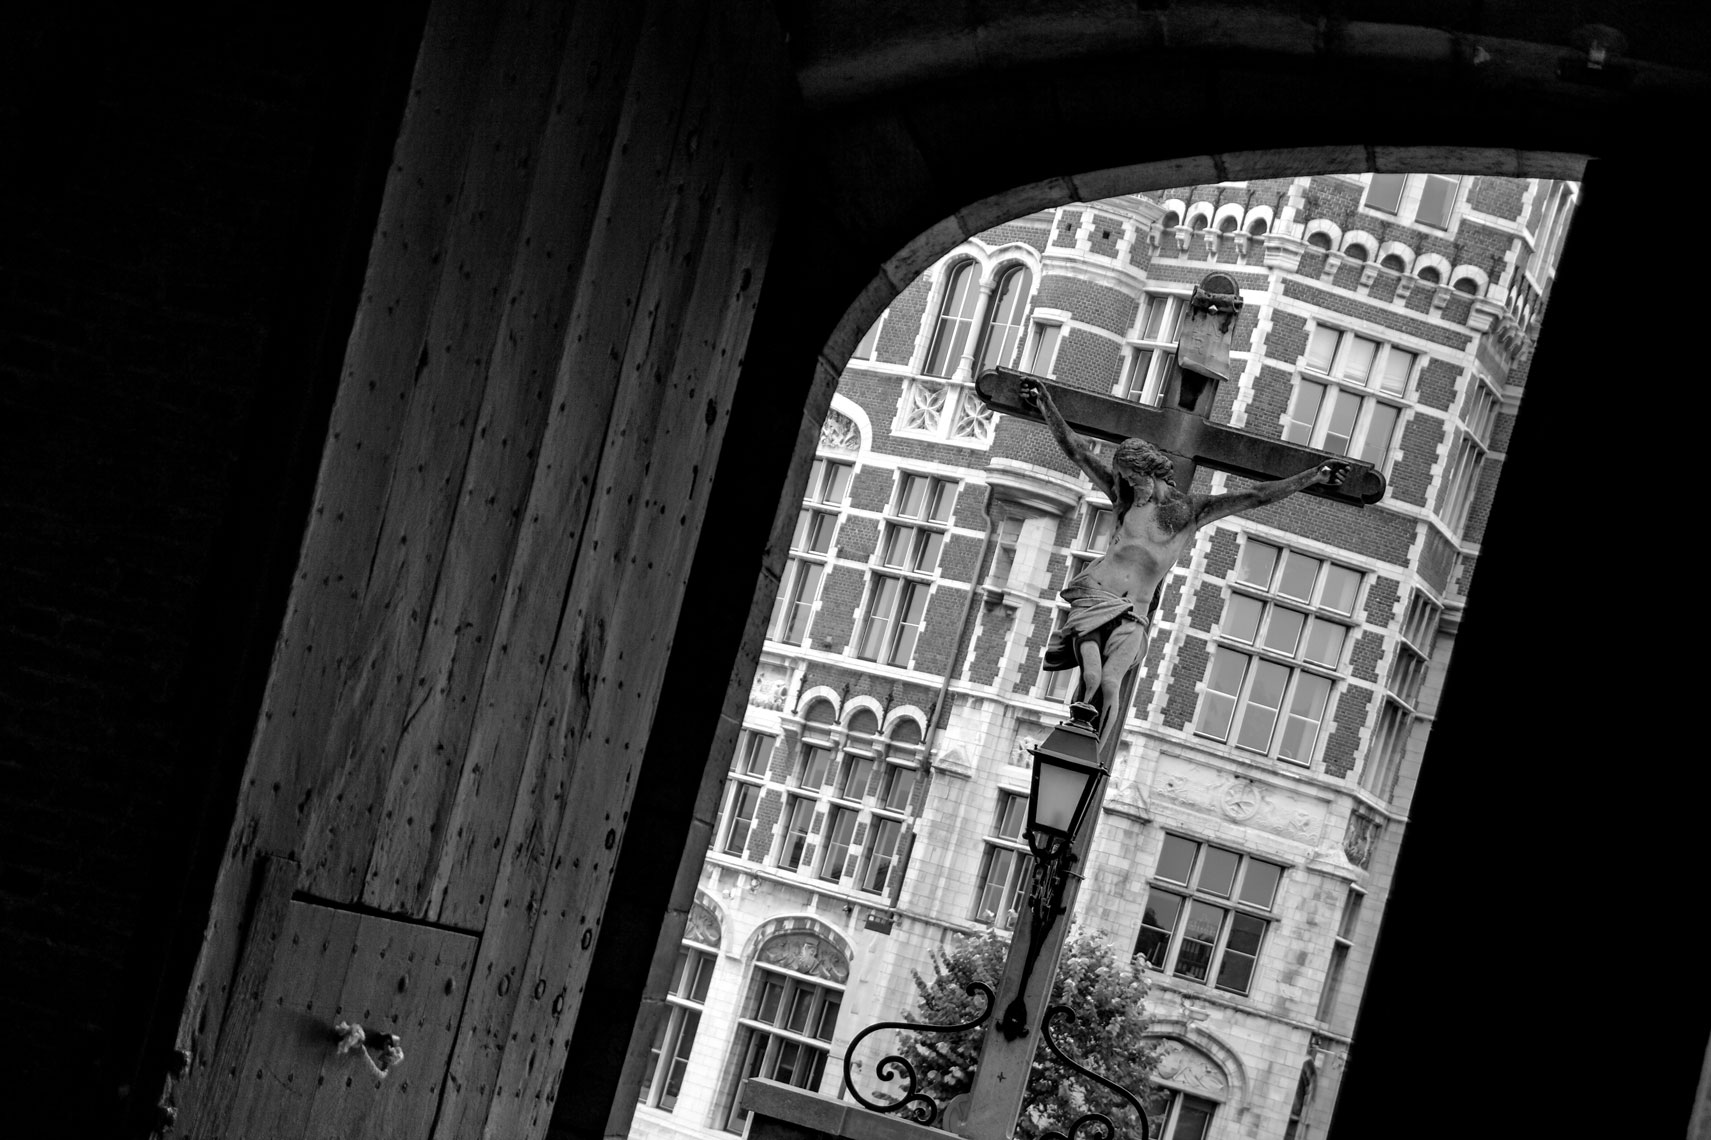 Christ/cross/view out doorway/Location photography